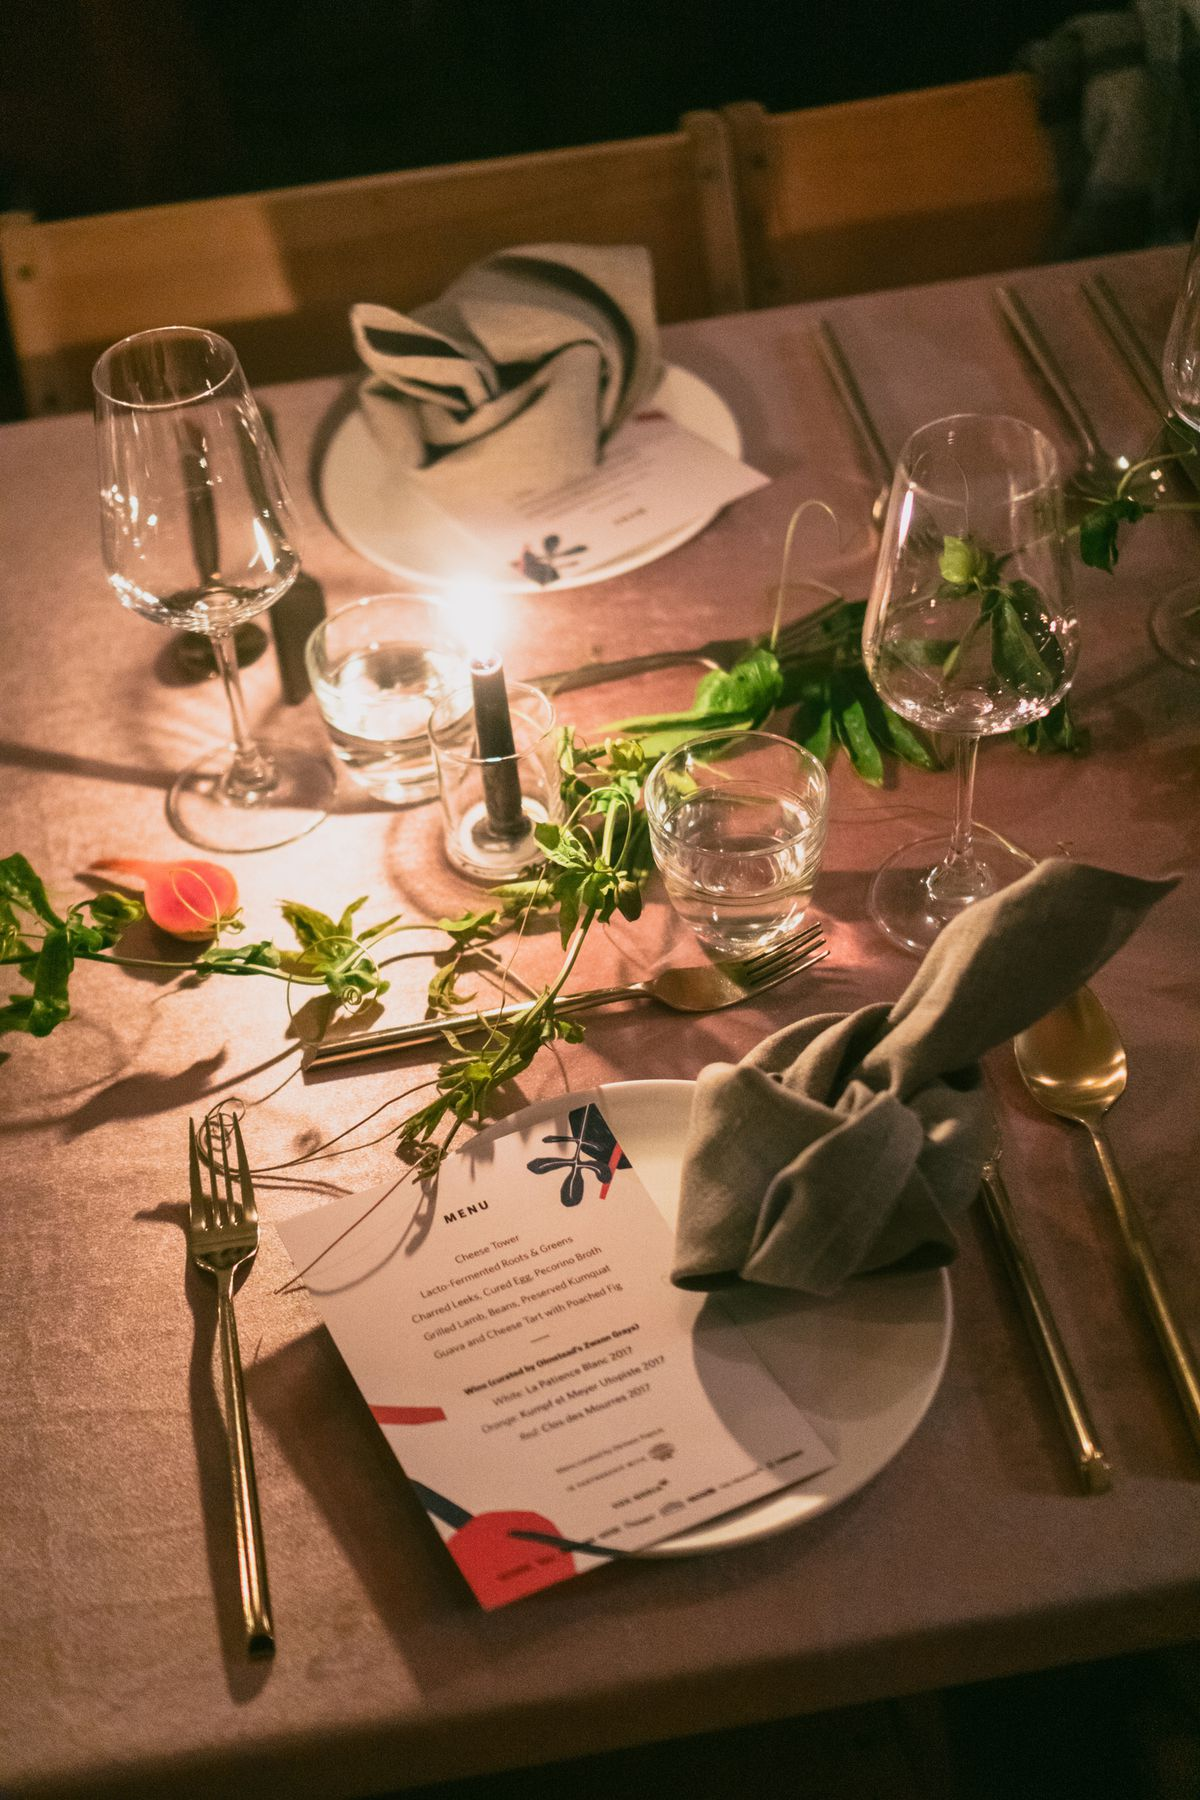 Candle-lit table with a menu sitting on a plate